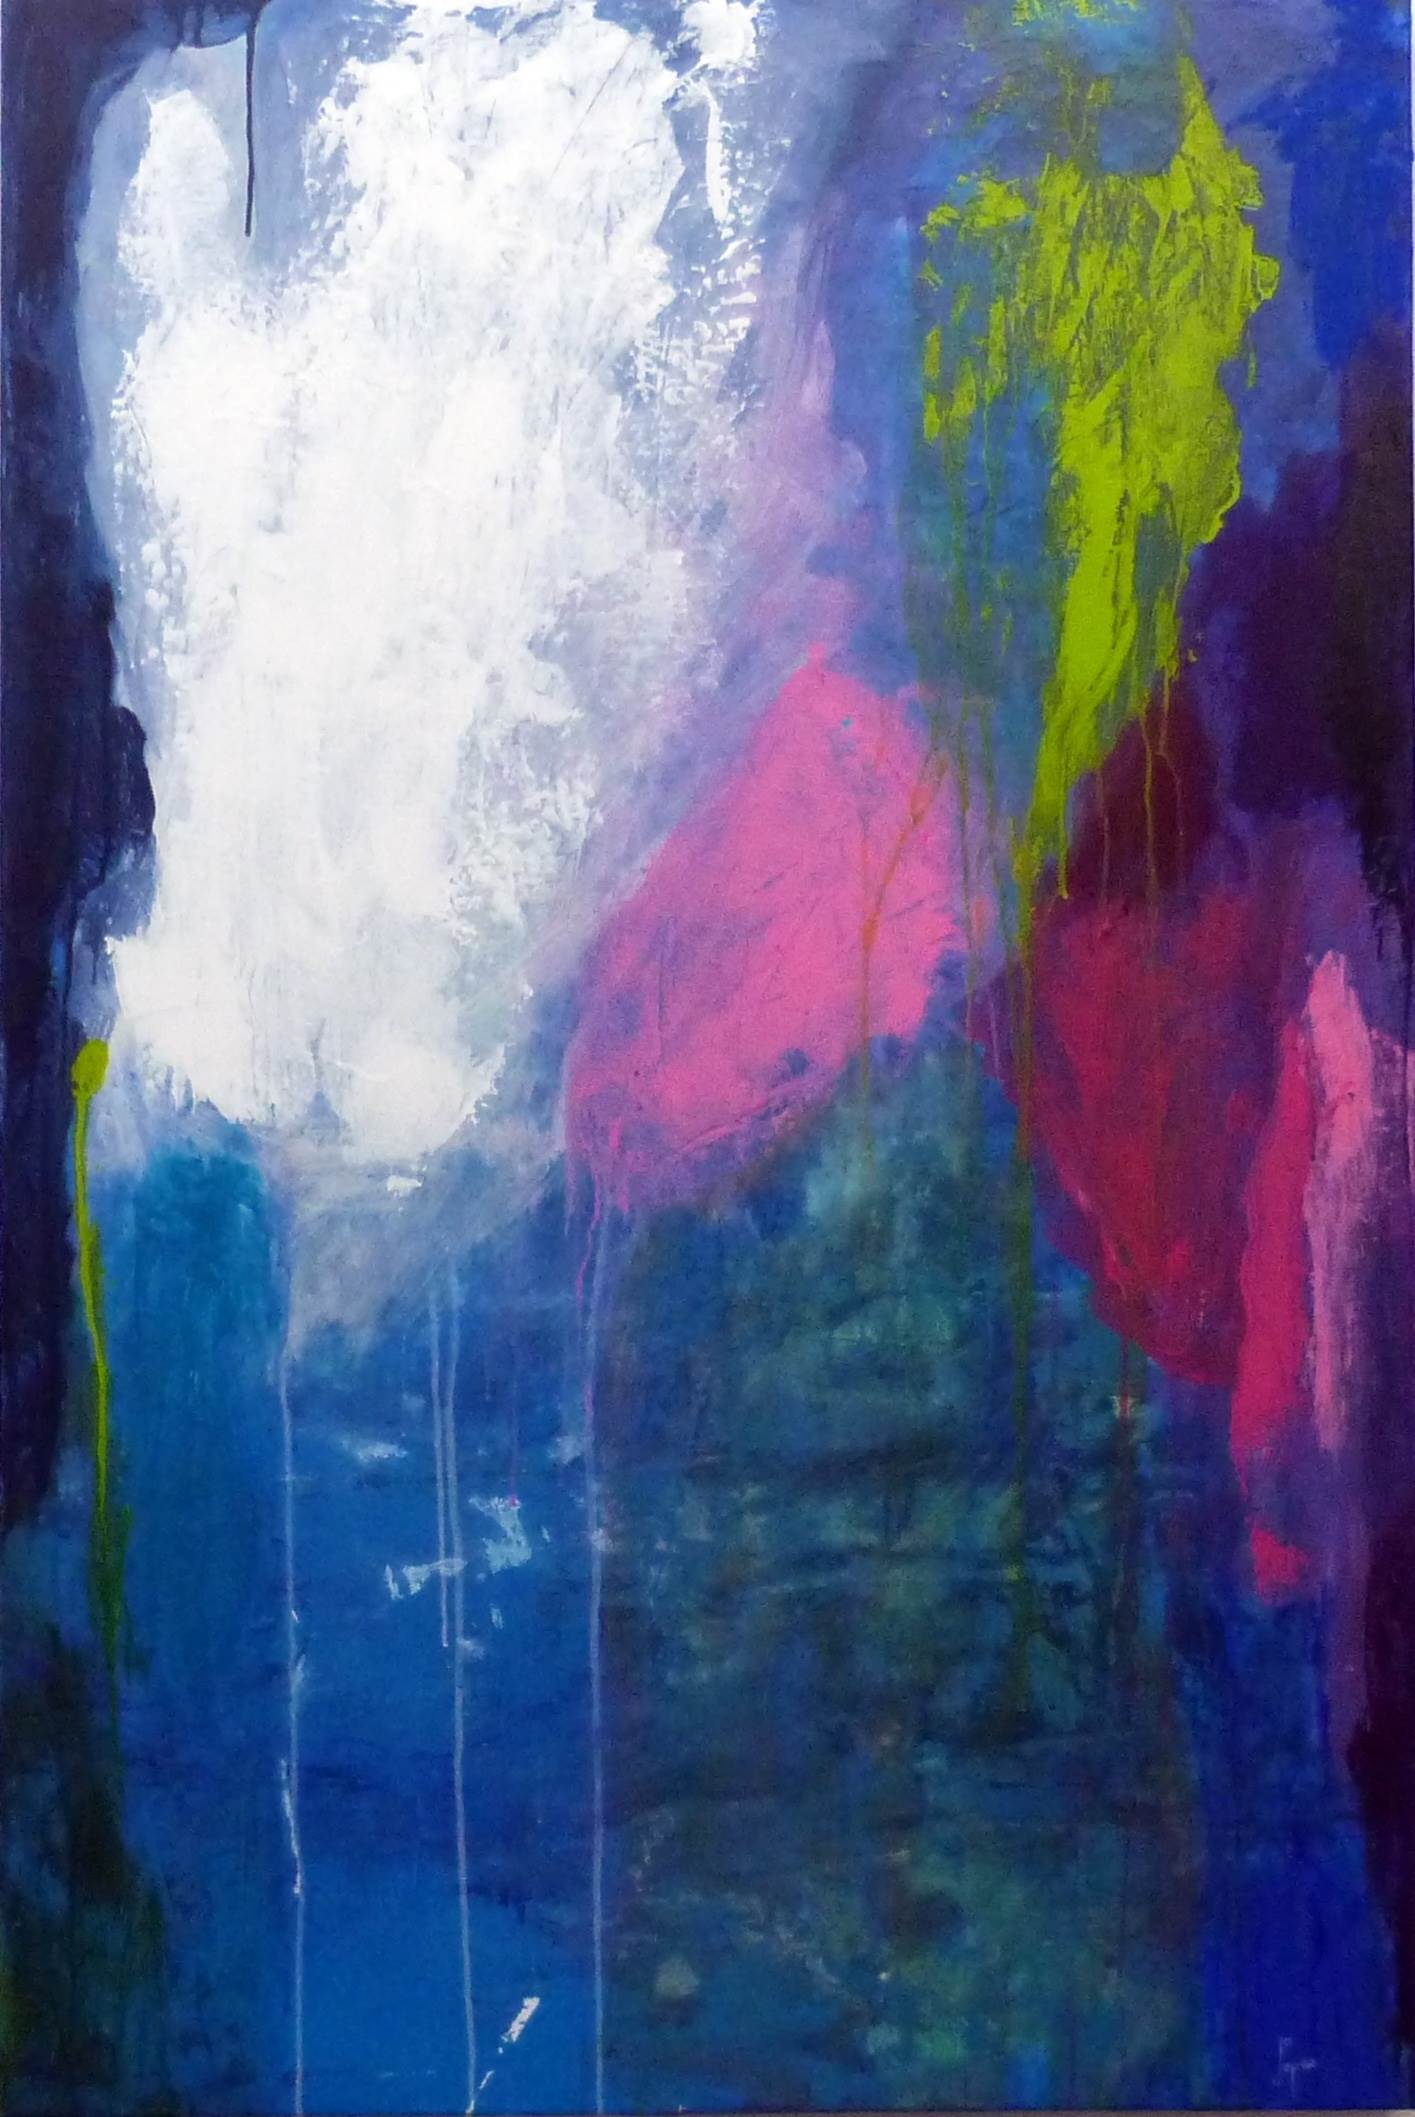 Nuvem Rosa - Casa Azul, original Abstract Acrylic Painting by Joana Lopes